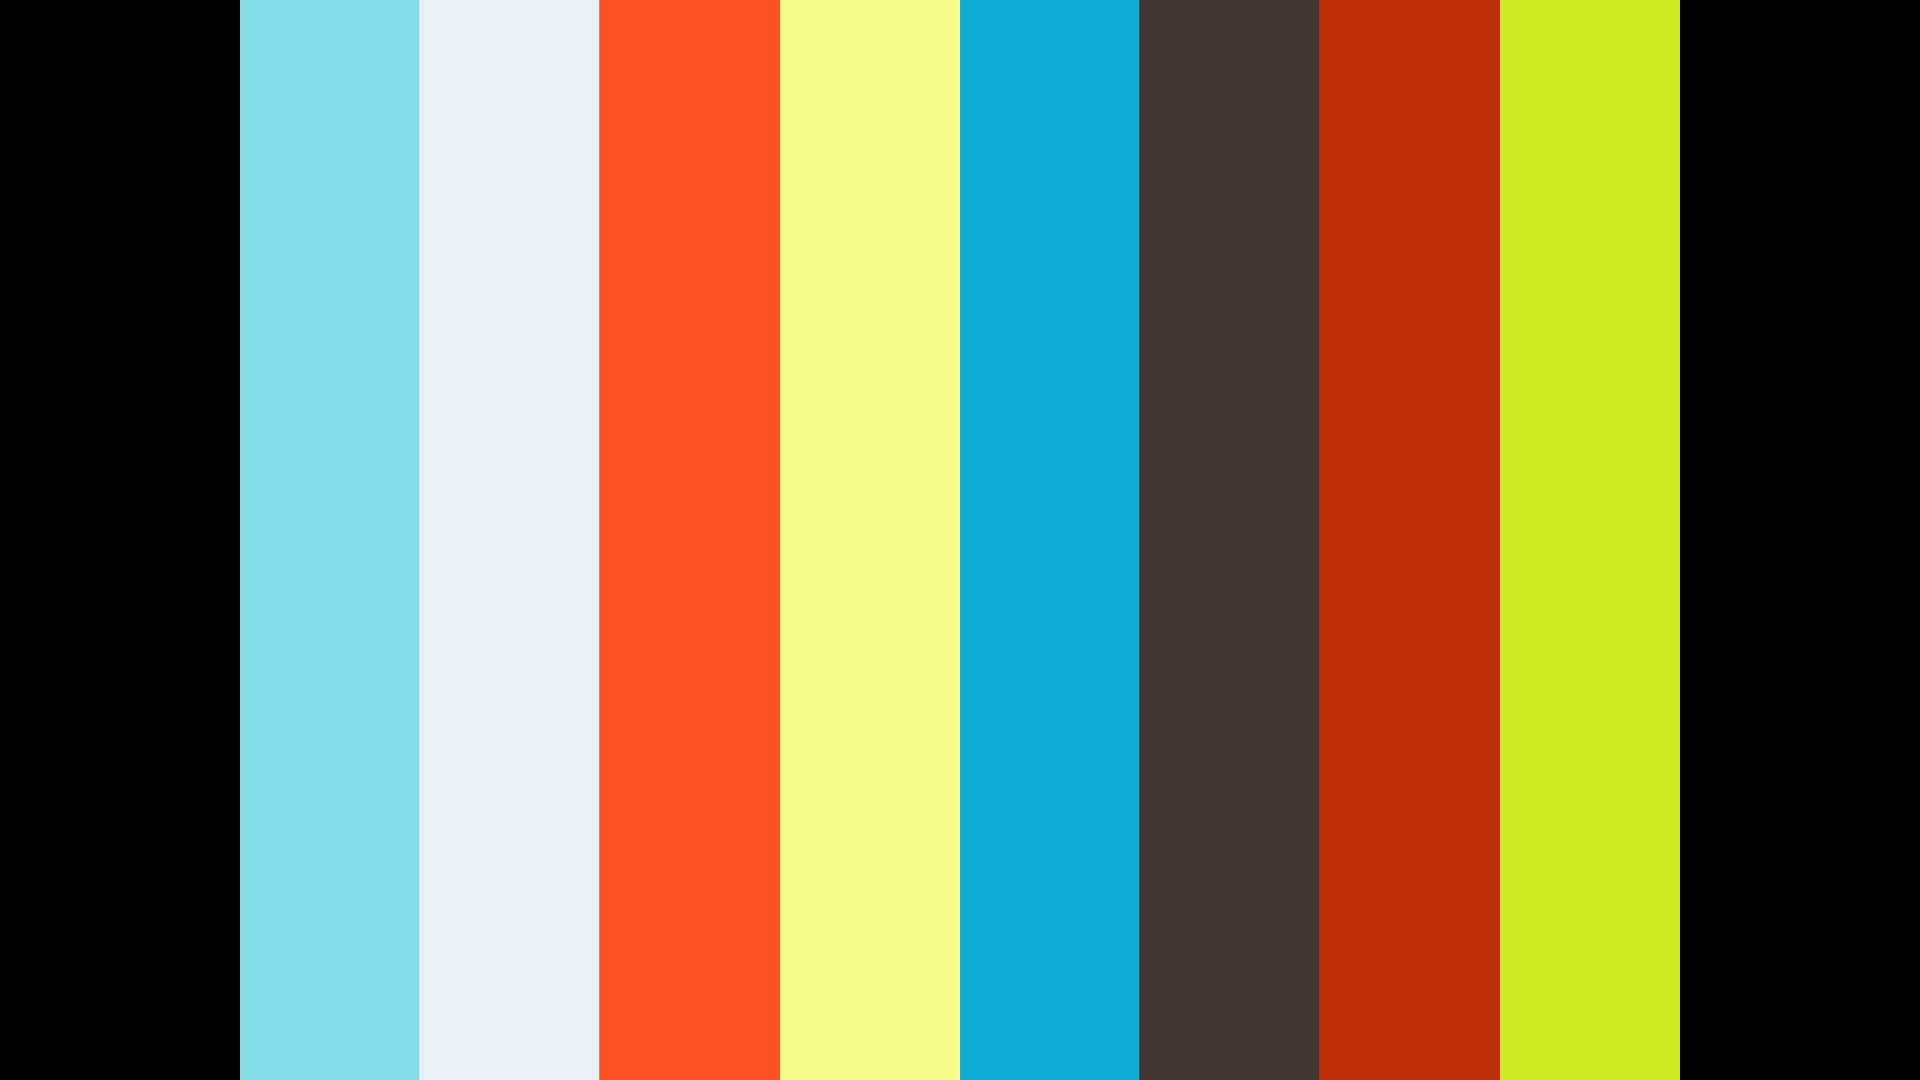 More delicious work by Tom Joye for Albert Heijn's chocolate happiness Delicata